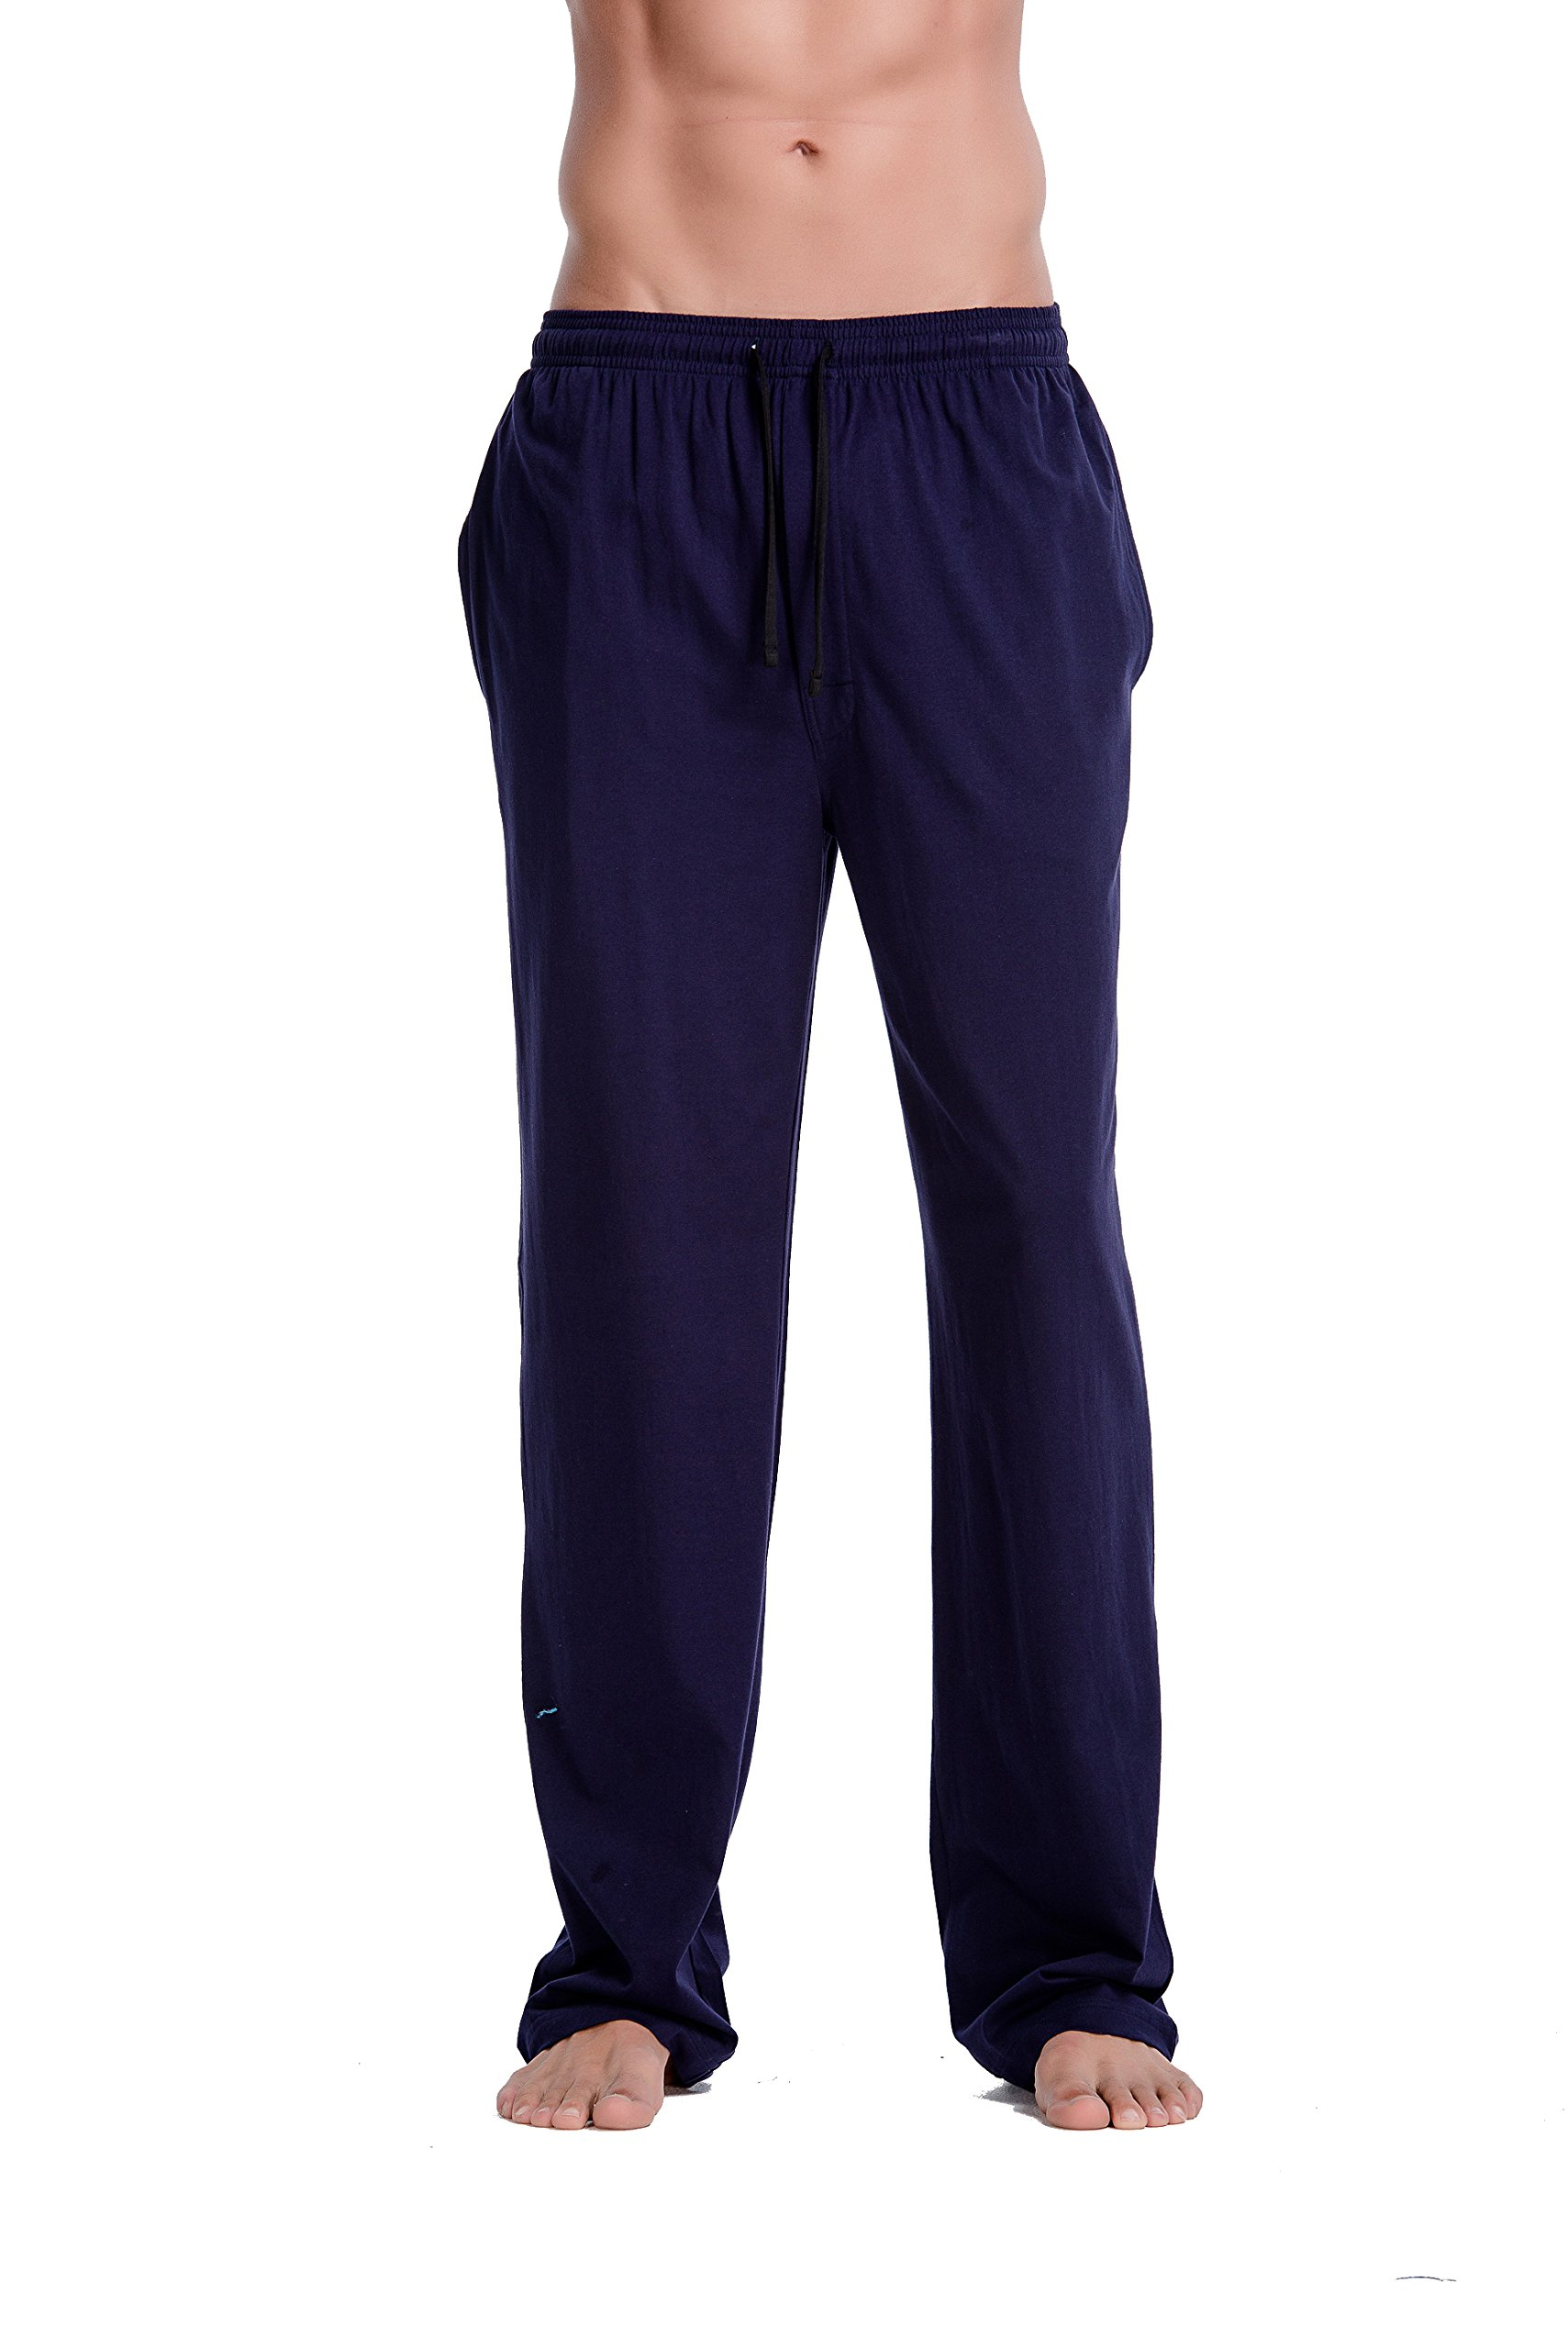 CYZ Men's 100% Cotton Jersey Knit Pajama Pants/Lounge Pants-EveningBlue-XL